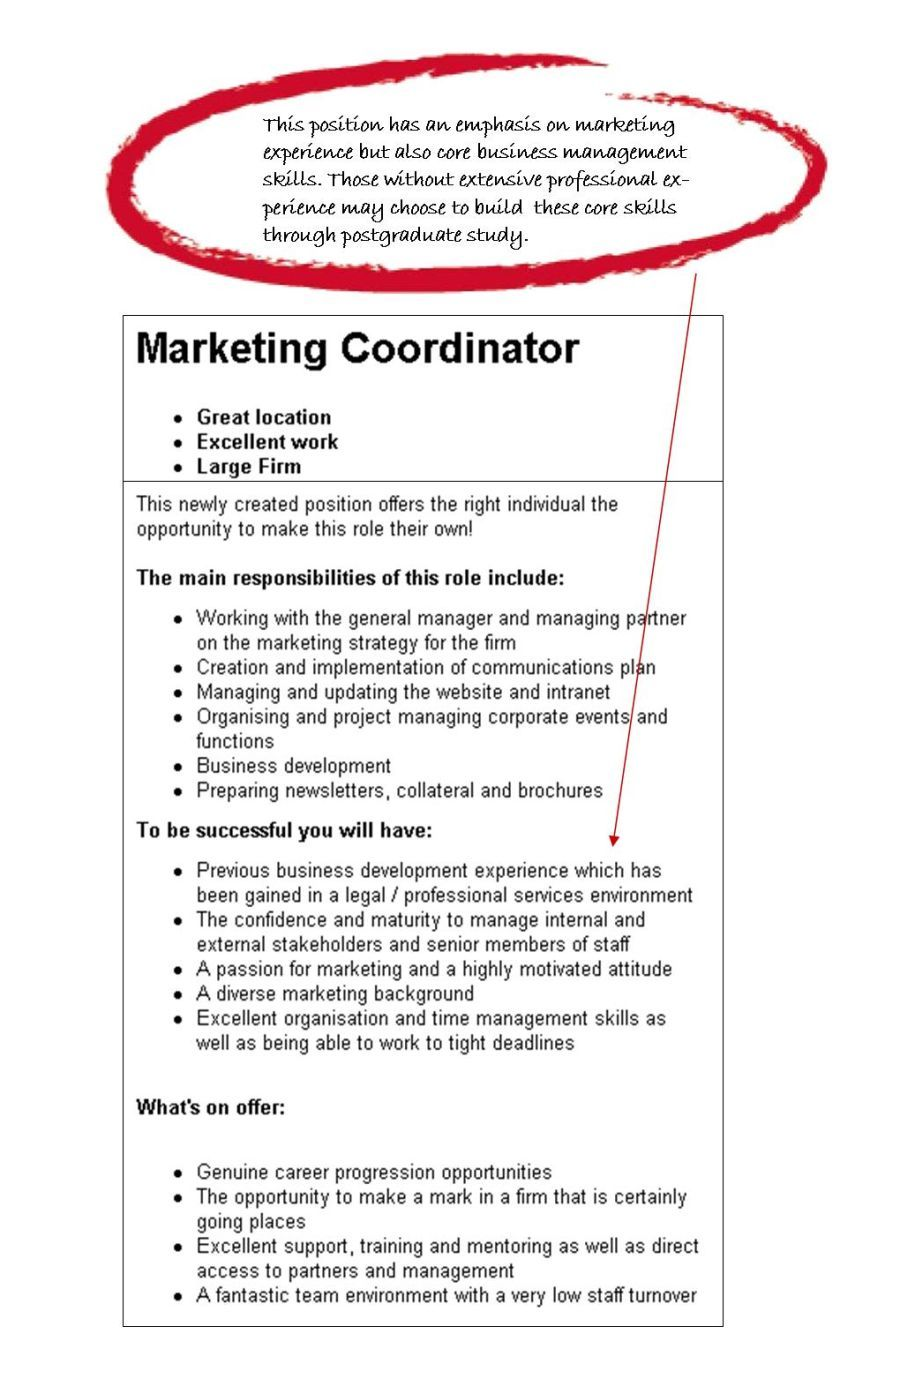 Basic Objective For Resume Objectives For Resume  Resume  Pinterest  Resume Objective And